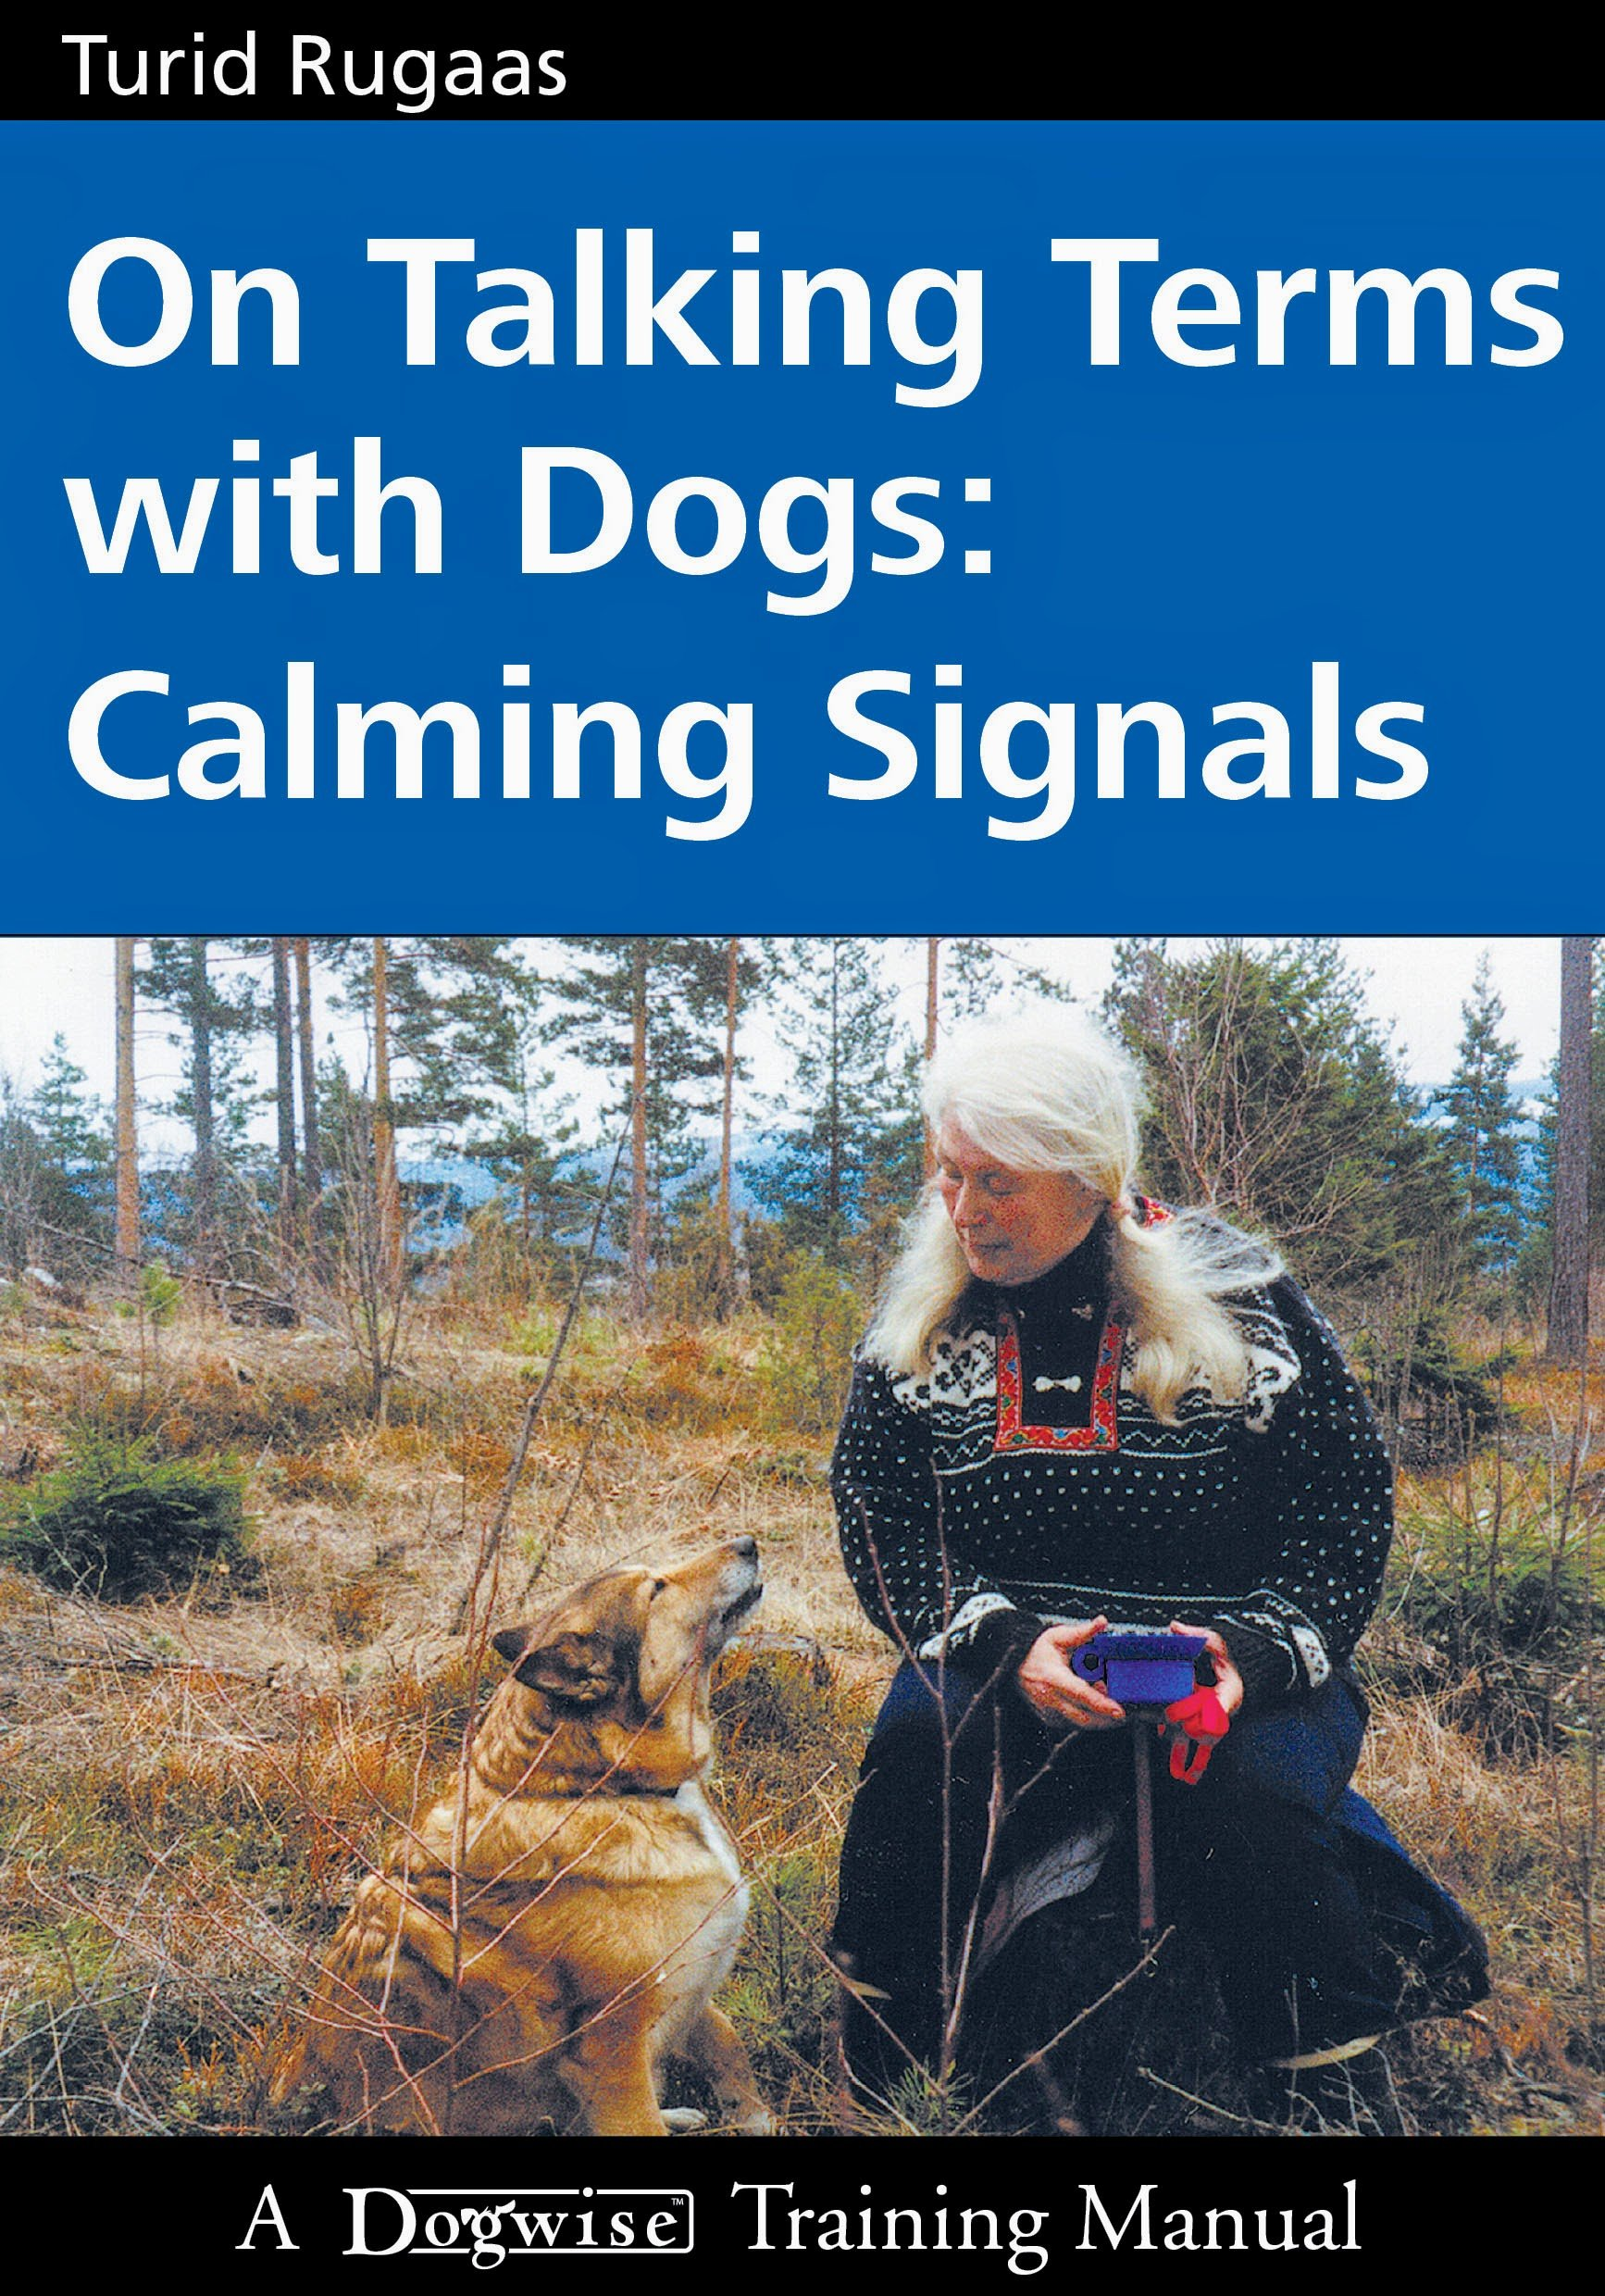 On Talking Terms With Dogs Calming Signals by Turid Rugaas